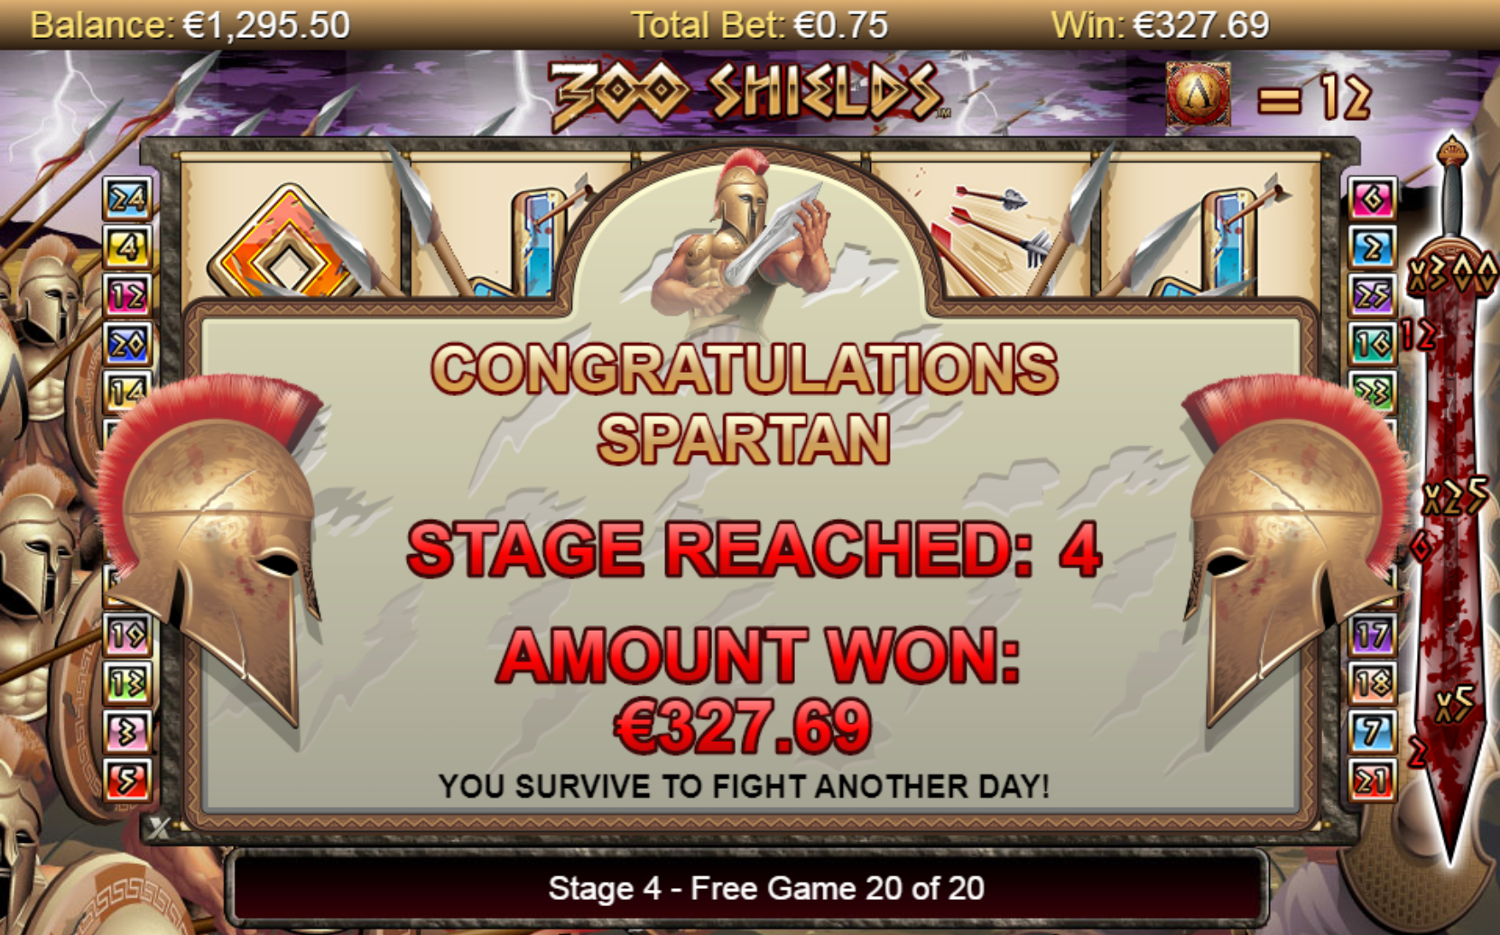 300 Shields slot huge free spins win